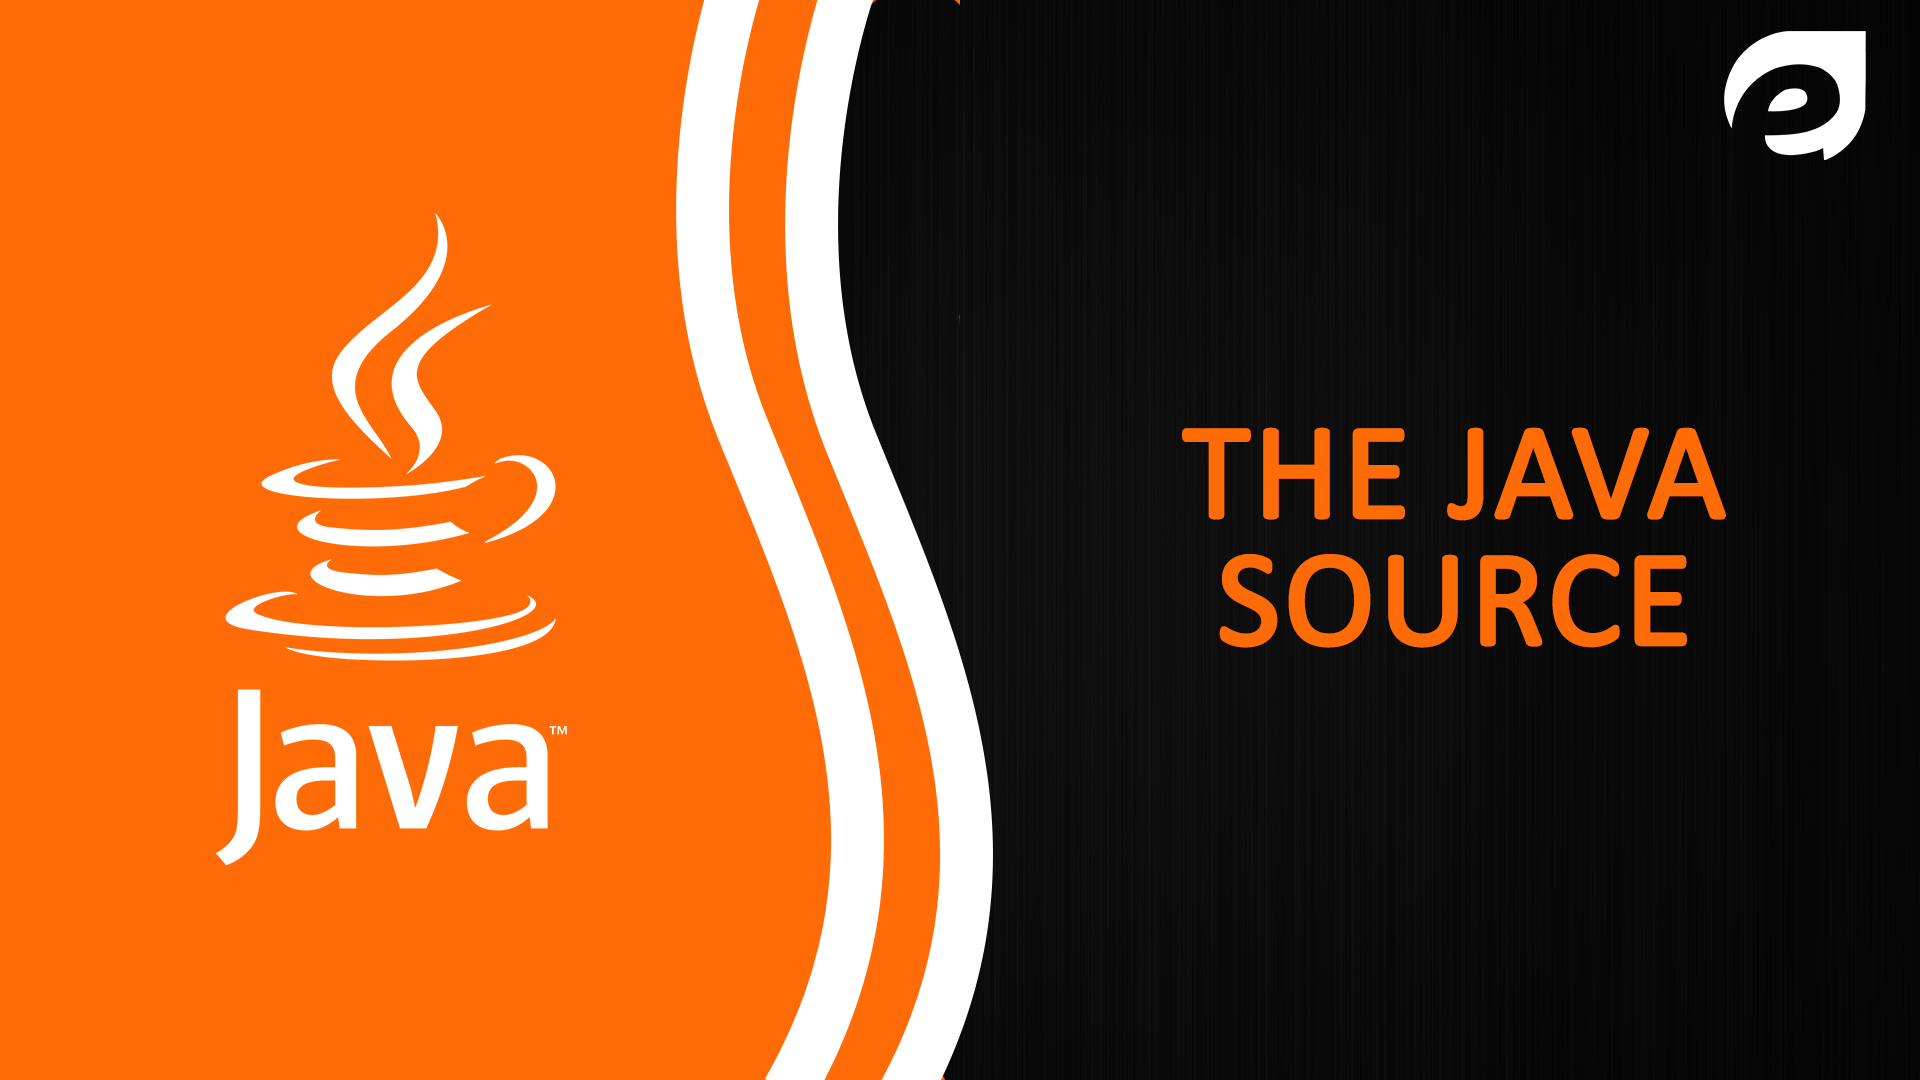 the java source